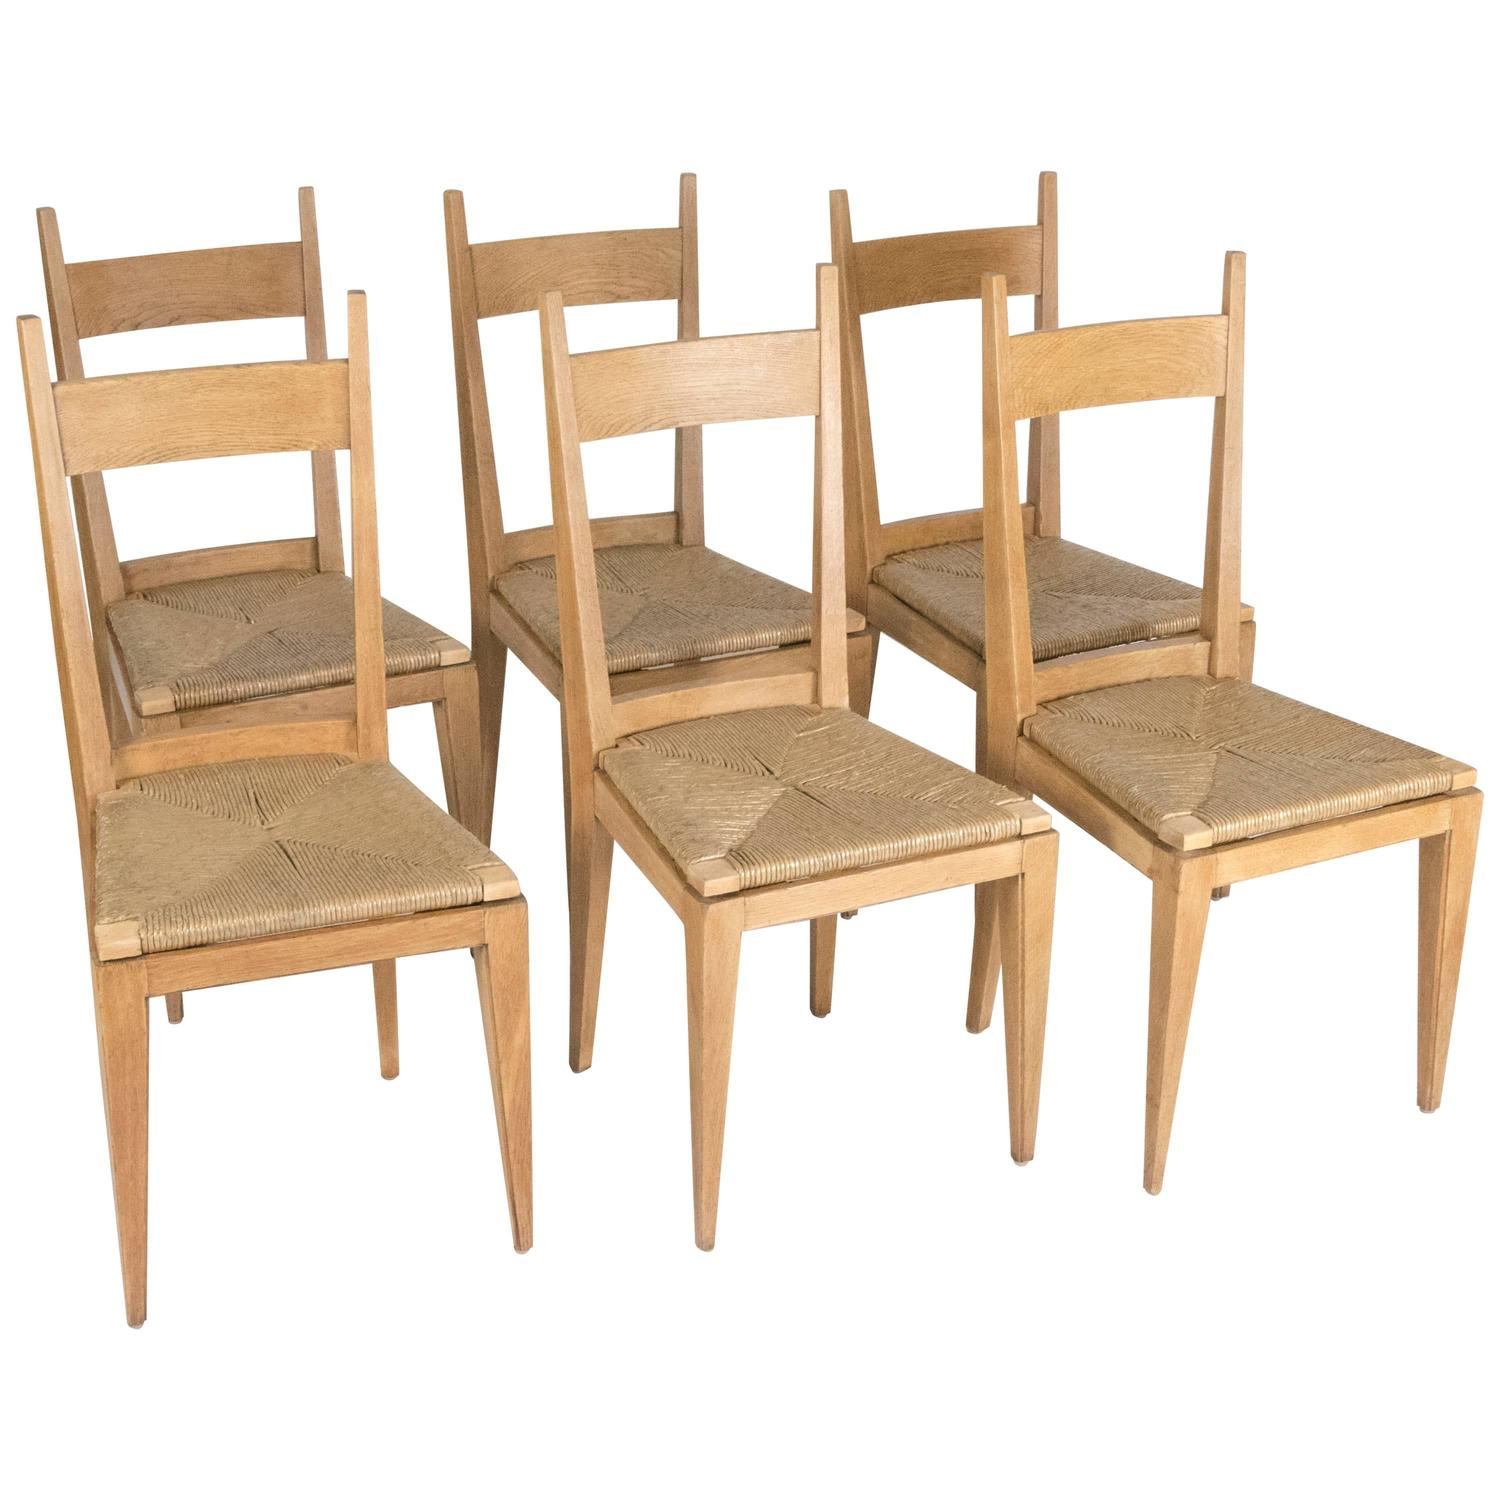 28 oak dining room chairs for sale oak dining room chairs and table for sale athlone oak - Oak dining room sets for sale ...